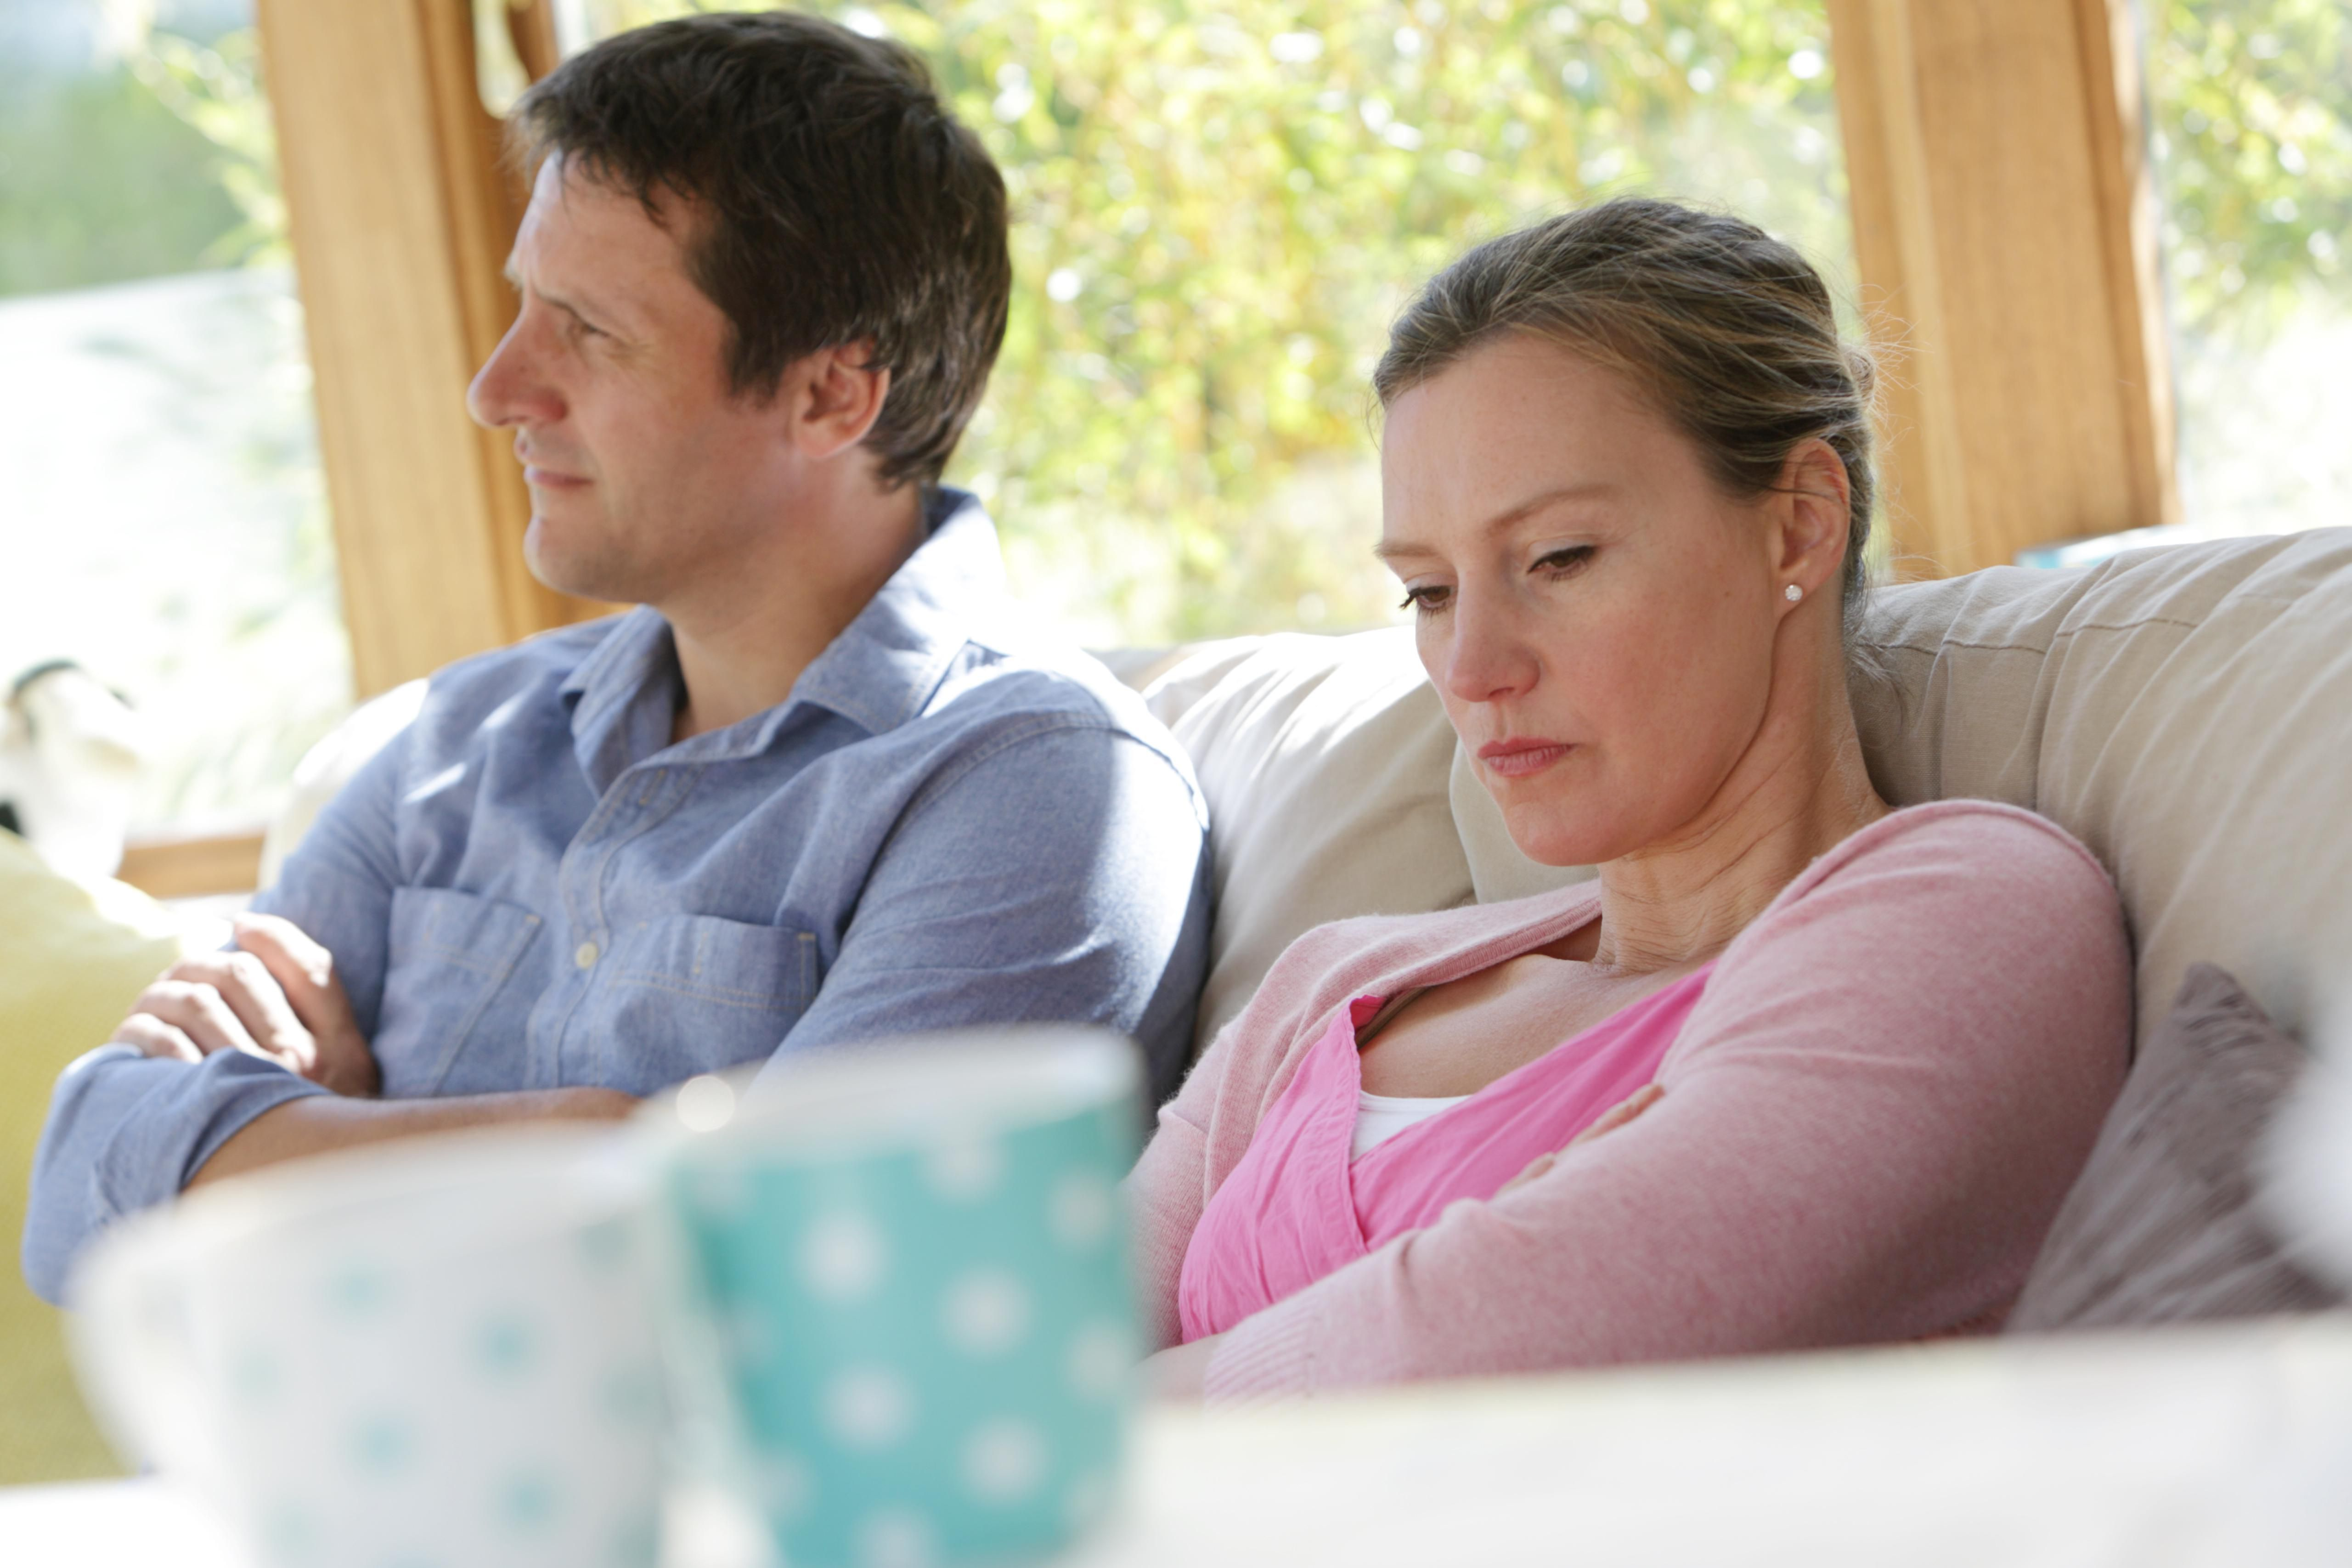 Ways to Rebuild Trust in Your Marriage